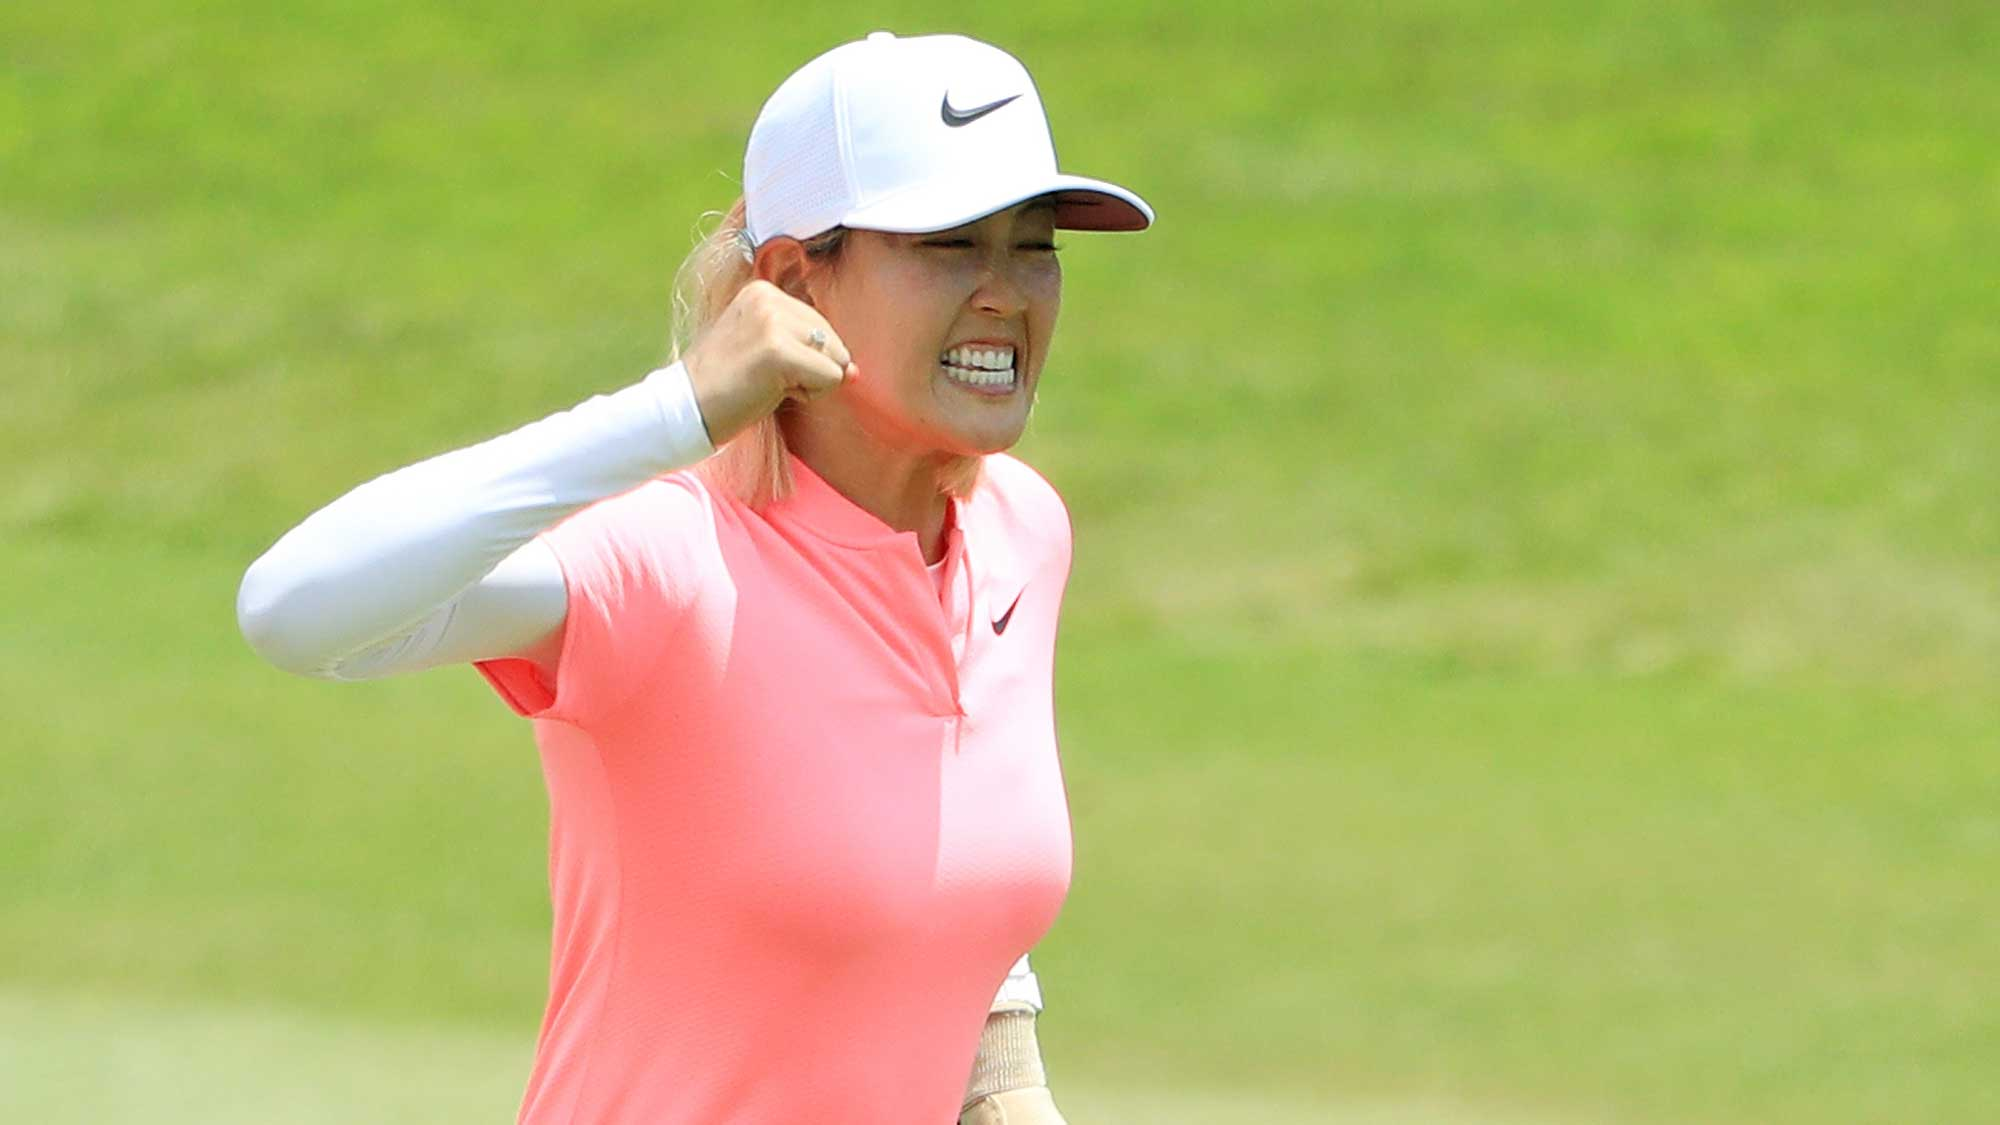 Michelle Wie Finds Her Game On Day One Of U.S. Open